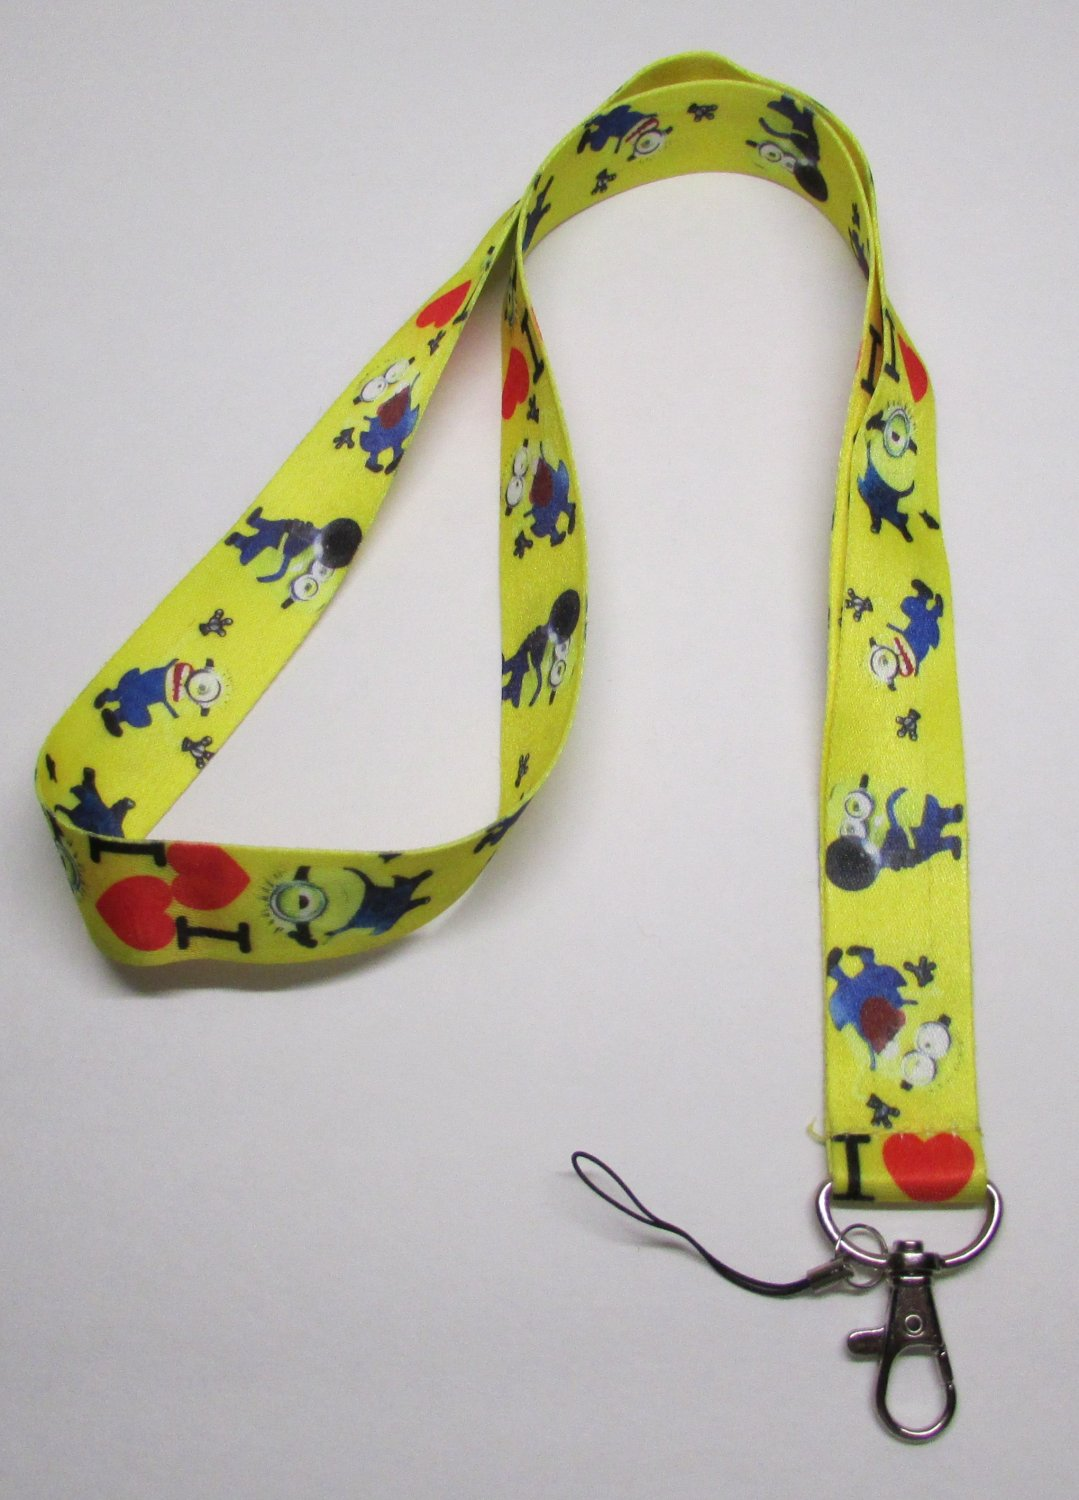 I Love MINIONs Despicable Me LANYARD KEY CHAIN Ring Keychain ID Holder NEW